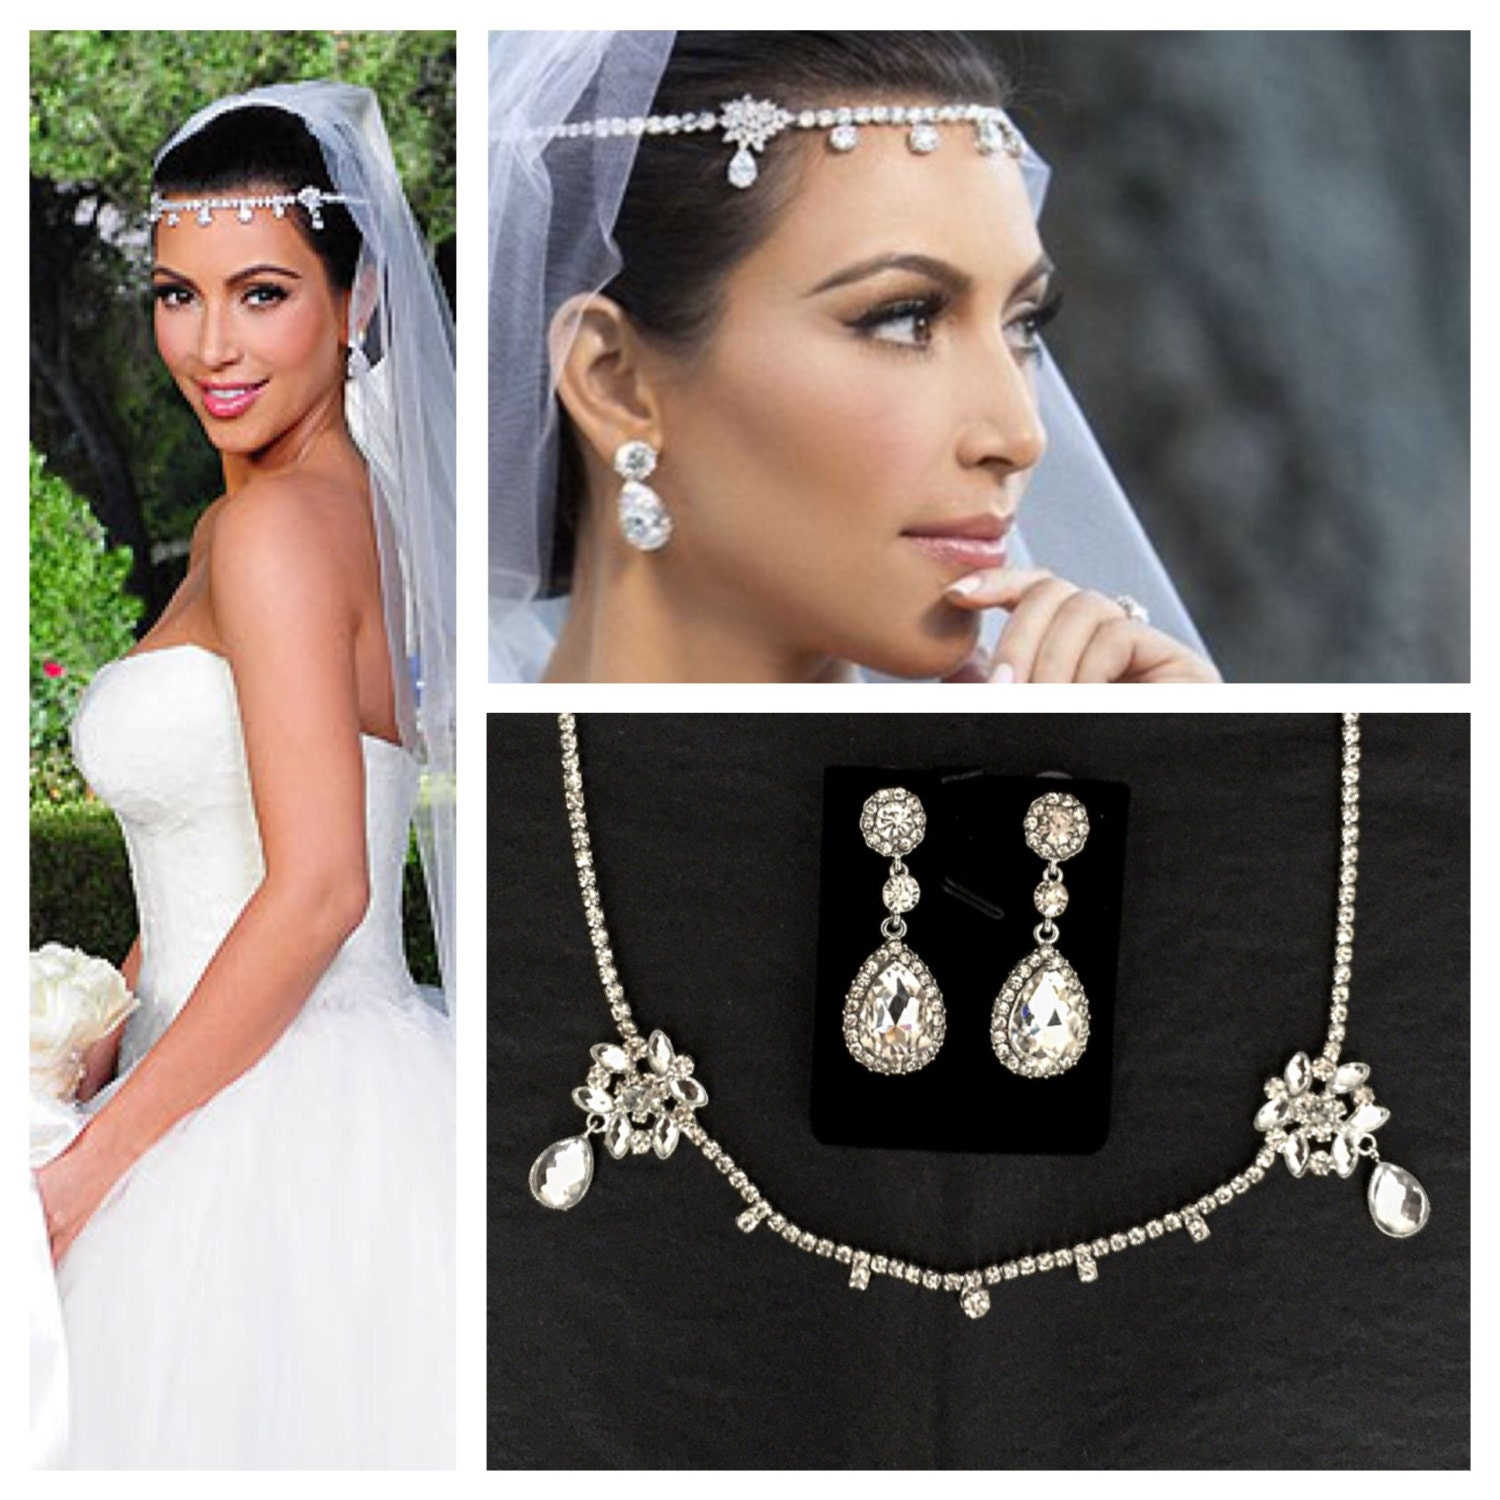 kim kardashian wedding headpiece earrings set tiara headband